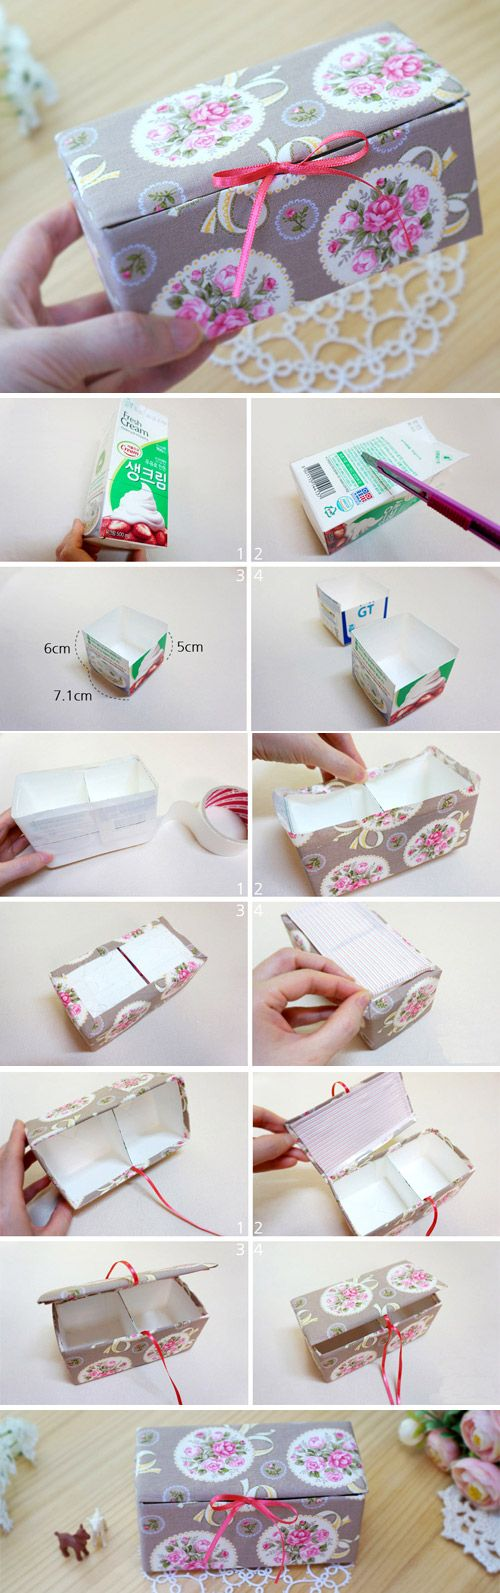 DIY Upcycled Milk Carton Storage Box Tutorial in Pictures.